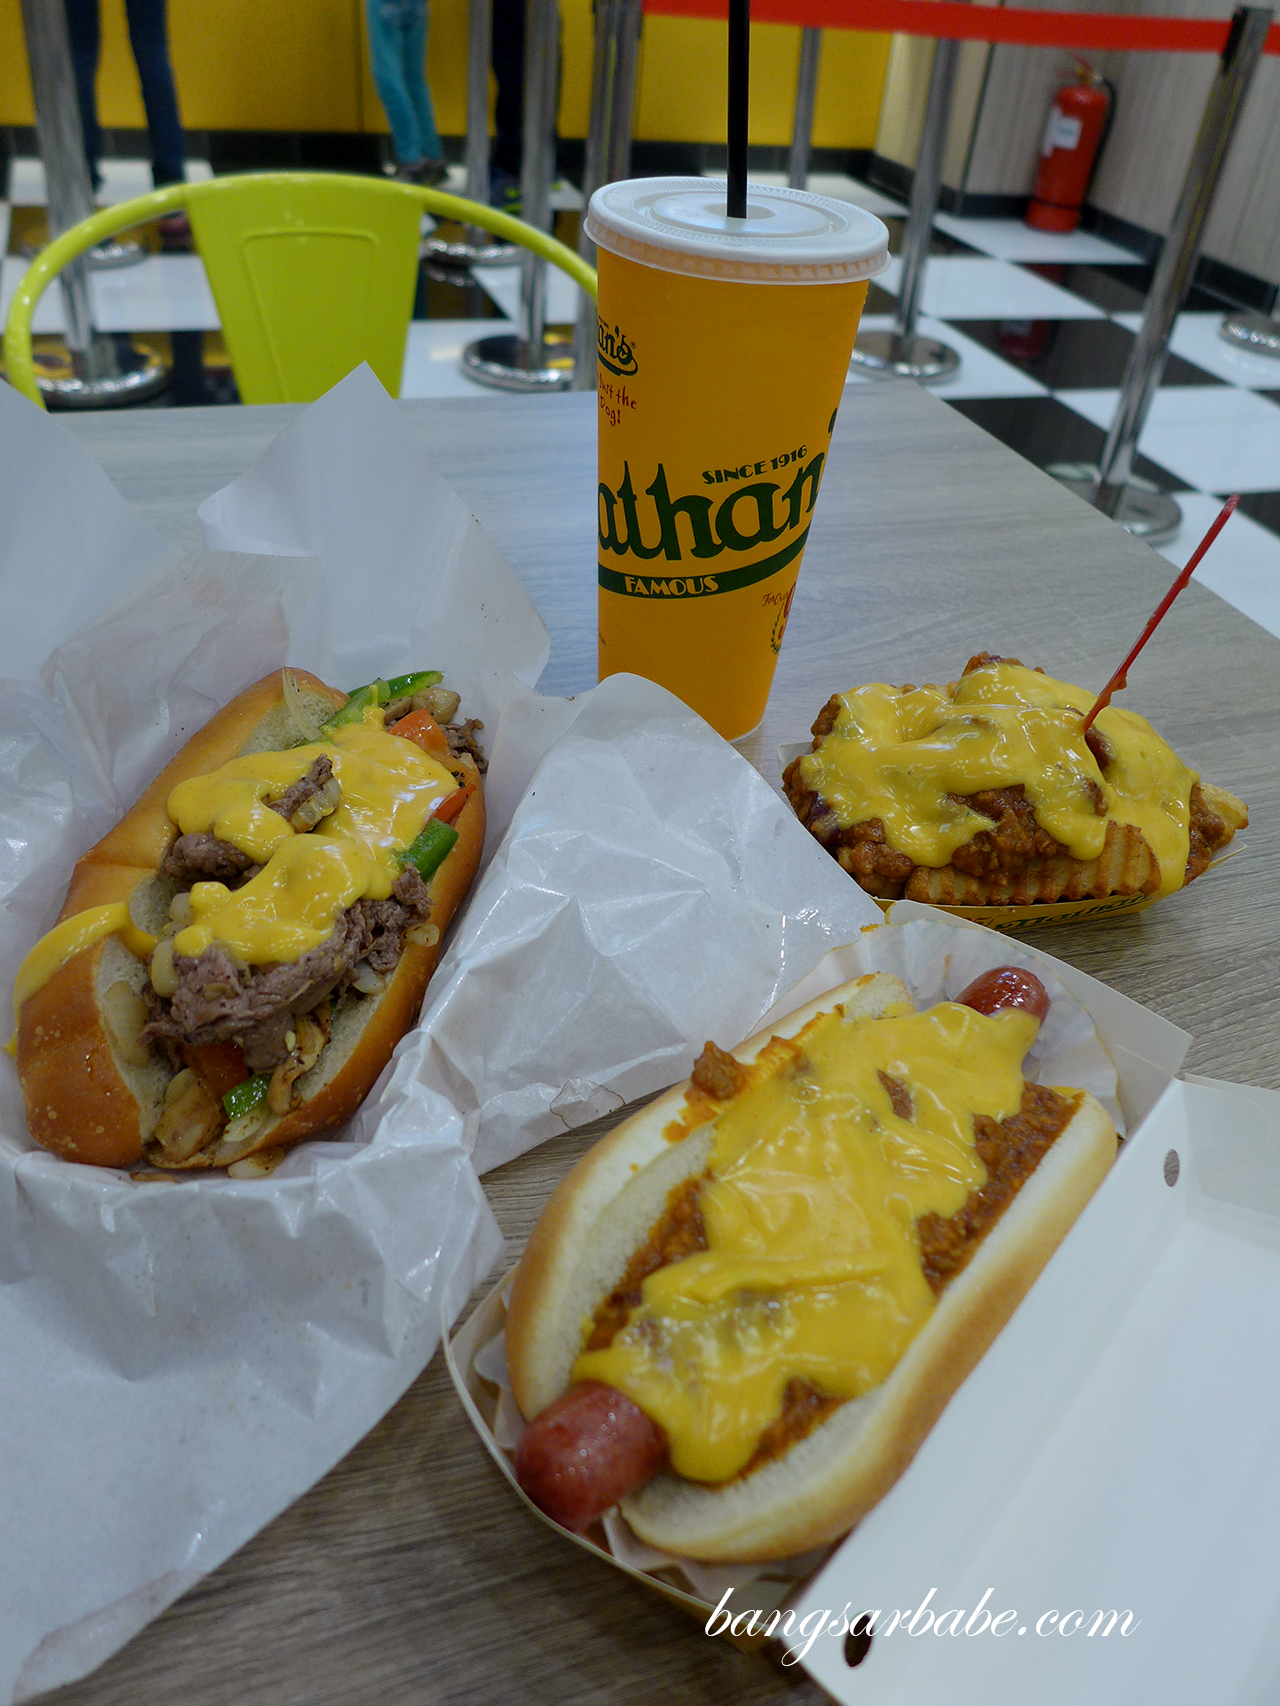 nathans-hotdog-cheesesteak-2